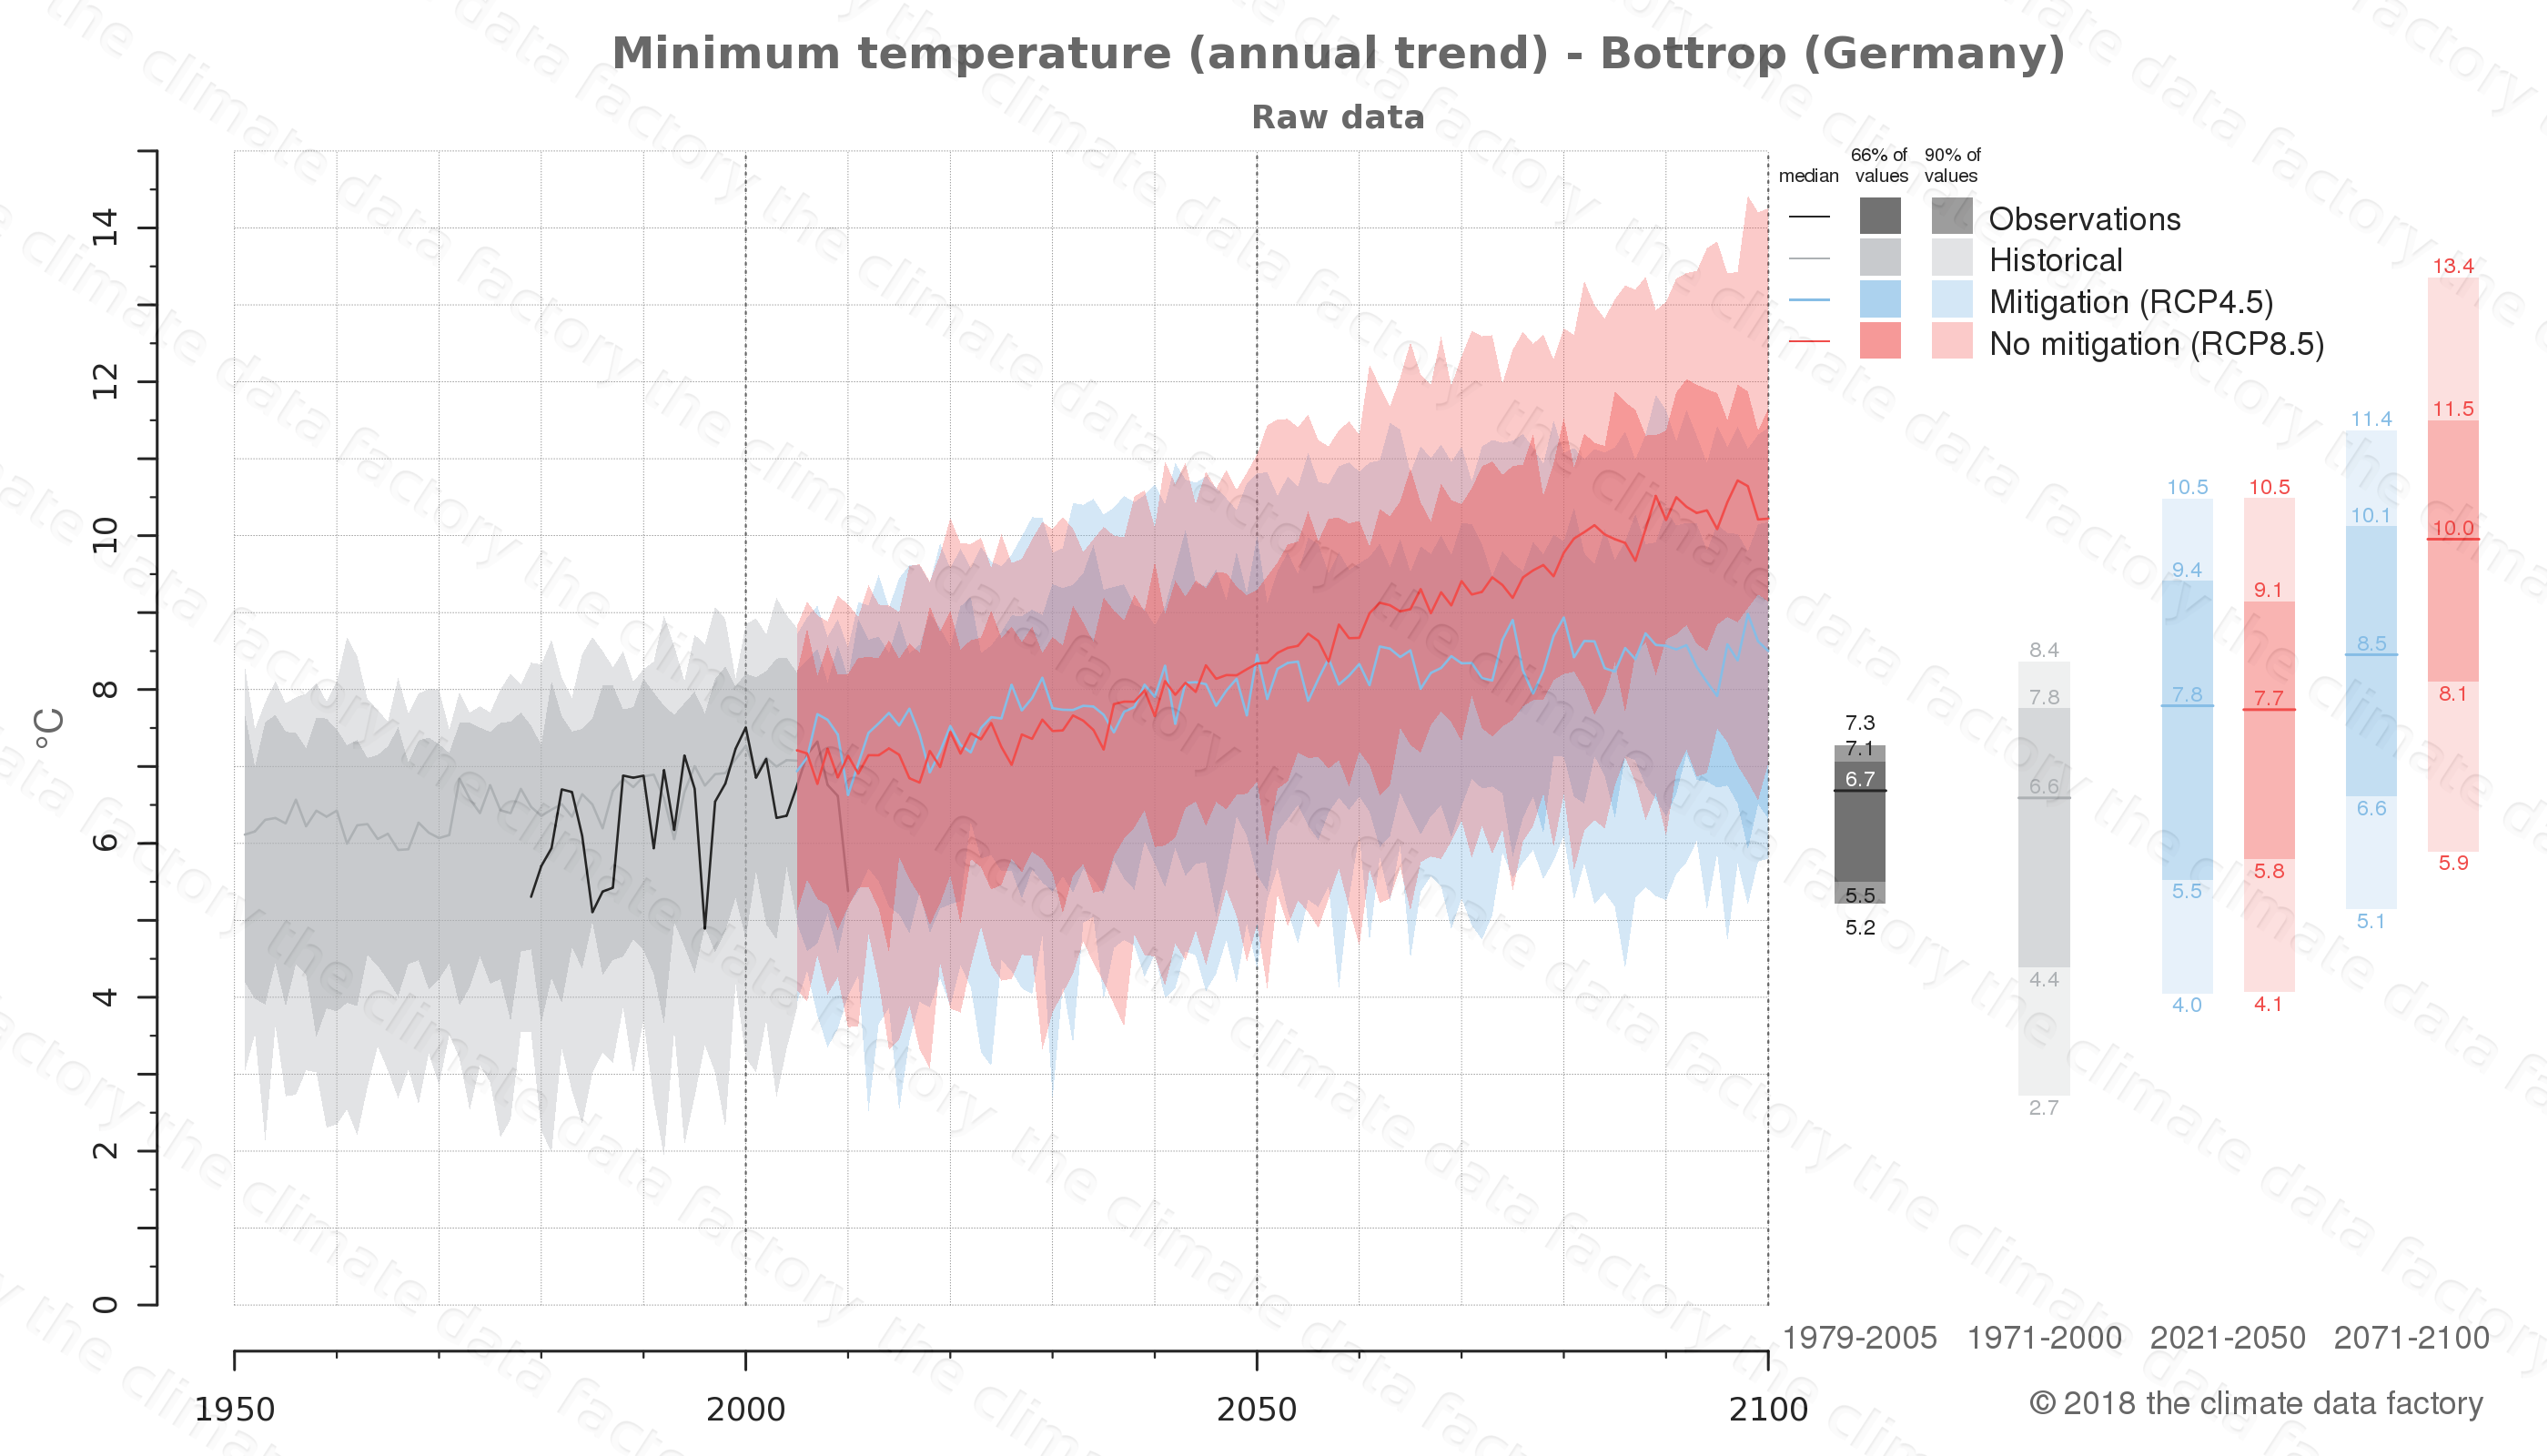 climate change data policy adaptation climate graph city data minimum-temperature bottrop germany